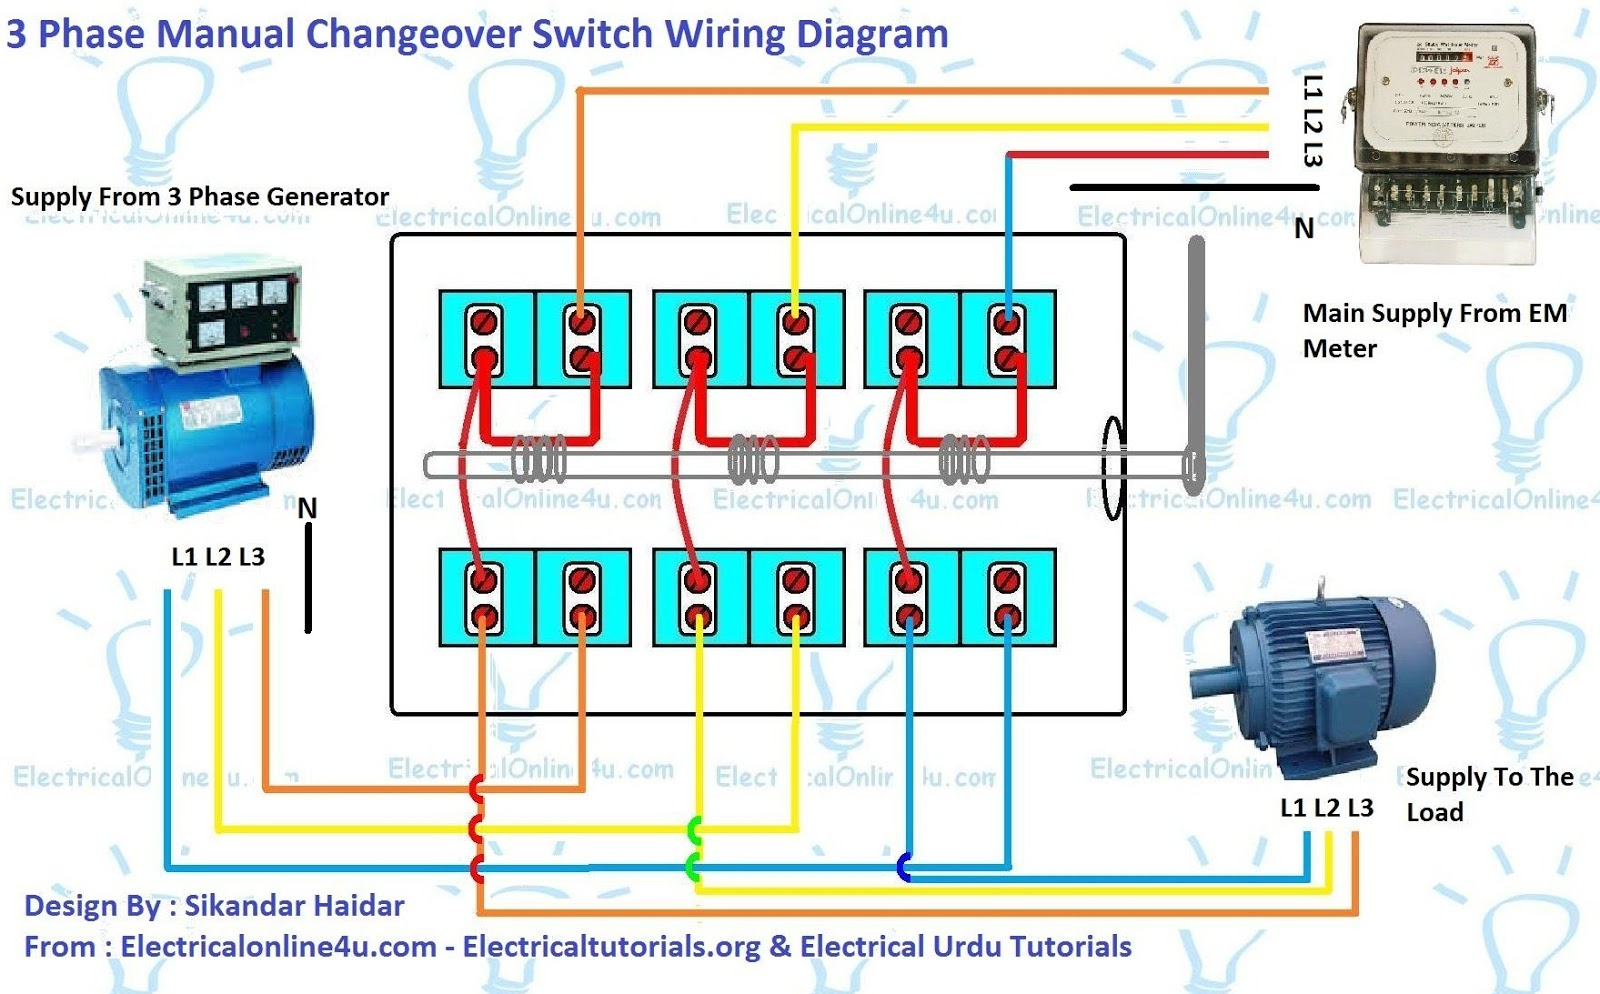 3%2Bphase%2Bmanual%2Bchangeover%2Bswitch%2Bwiring%2Bdiagram 3 phase manual changeover switch wiring diagram for generator 3 phase rotary switch wiring diagram at reclaimingppi.co